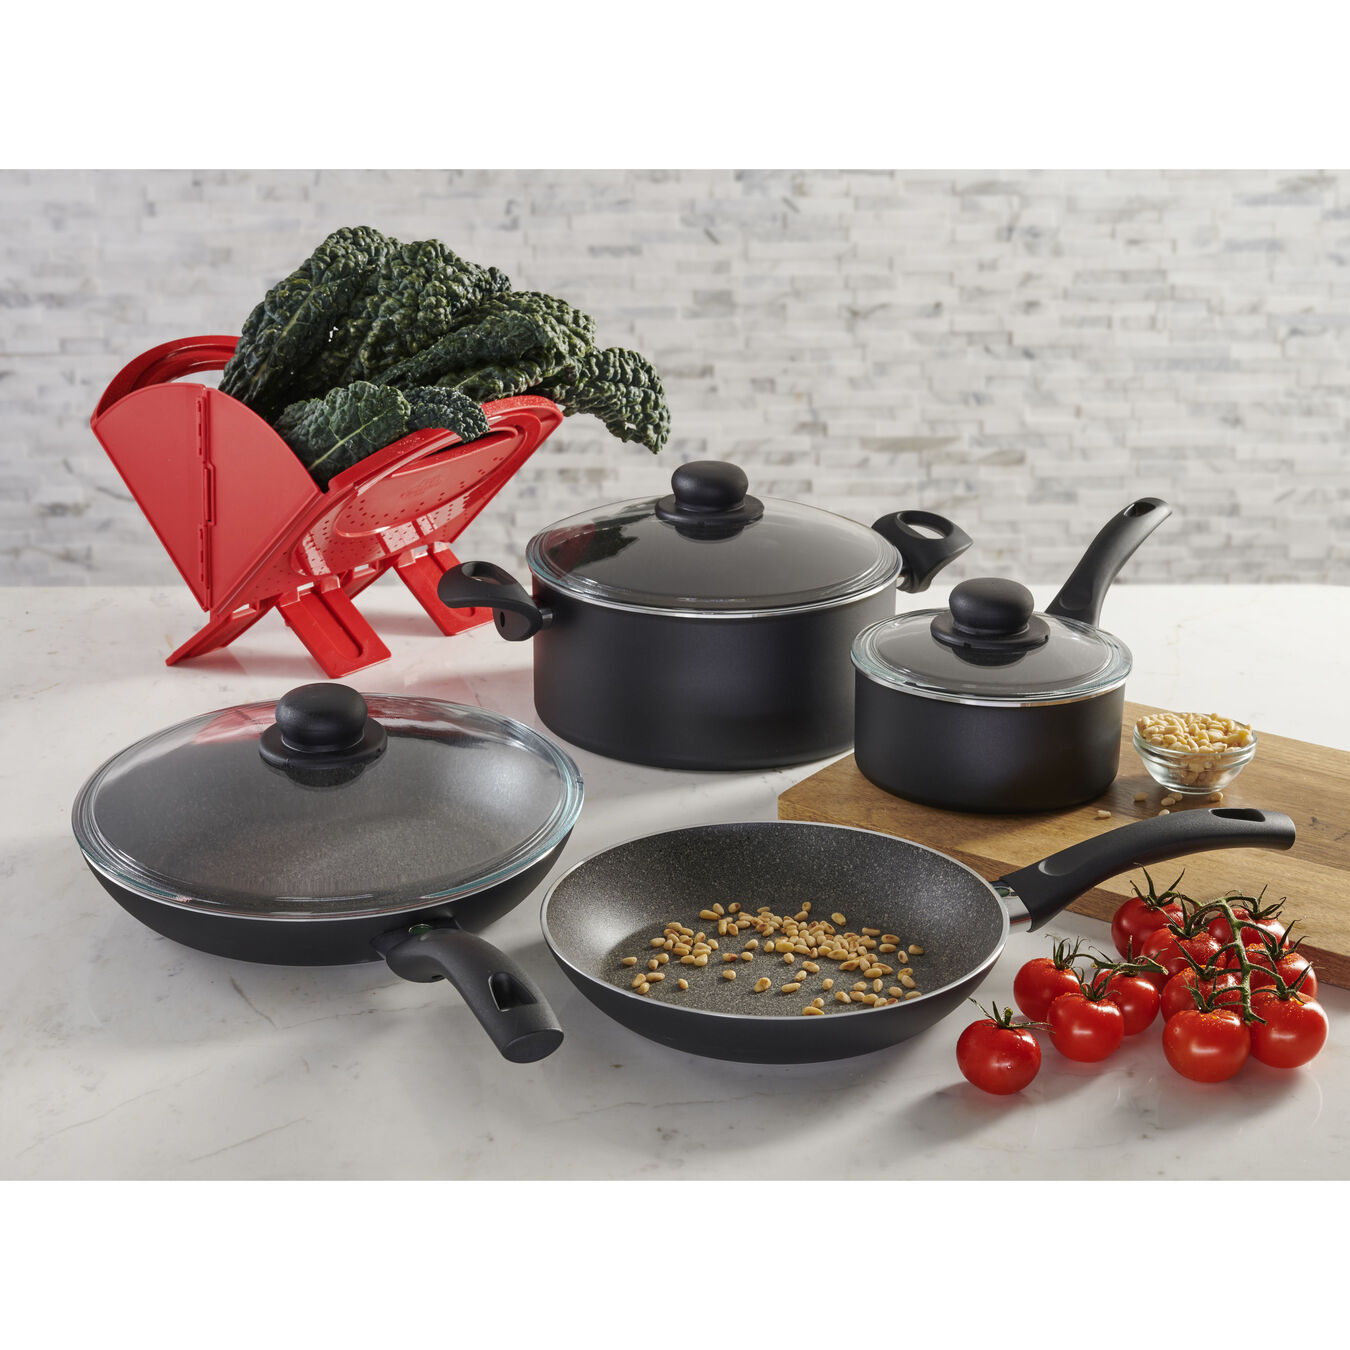 8-pc Cookware Set,,large 2